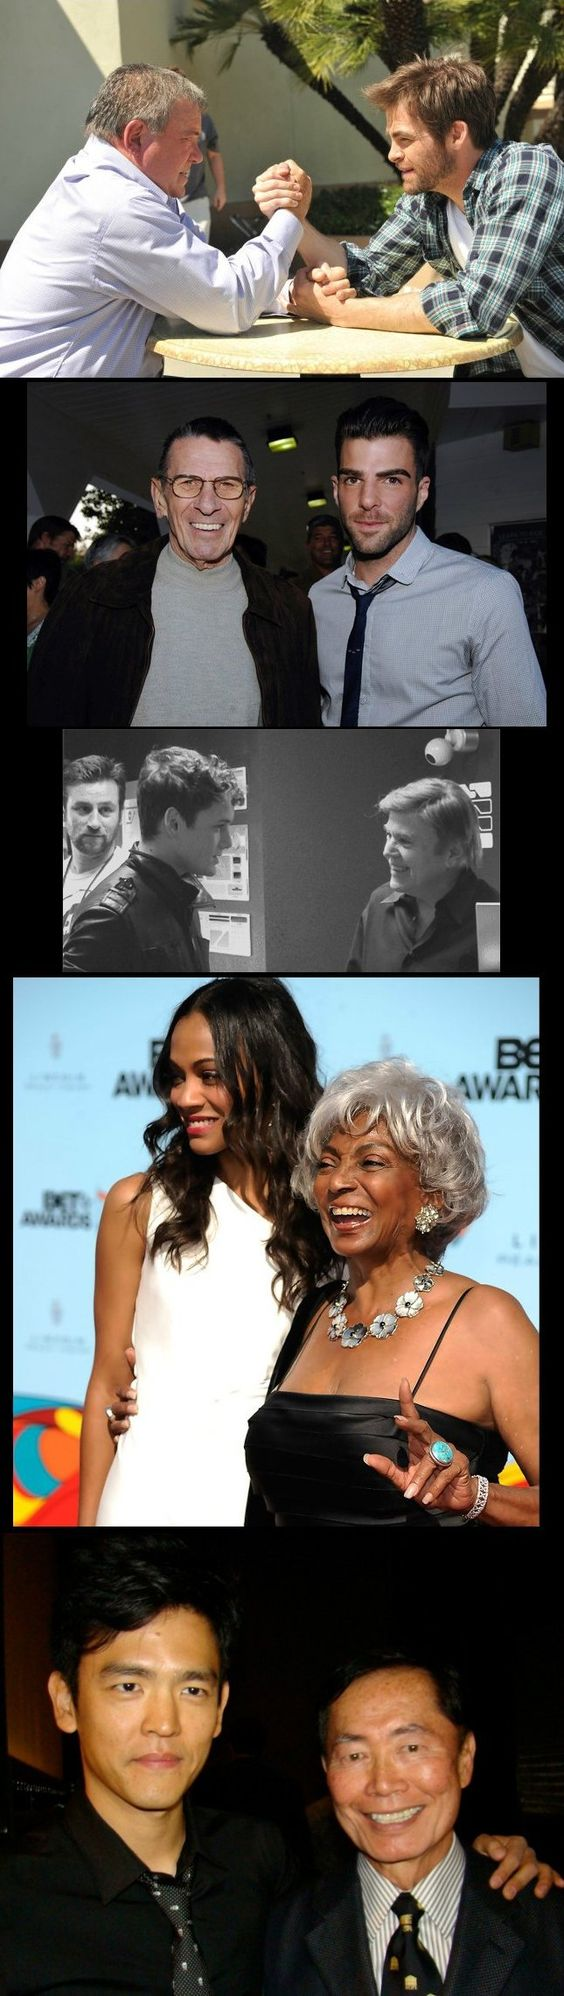 Star Trek X2. I am a nerd.. i just got teary looking at this and not sure why. I just grew up watching these people..who seem almost real, not characters and now we get to see them when they were young and beautiful..